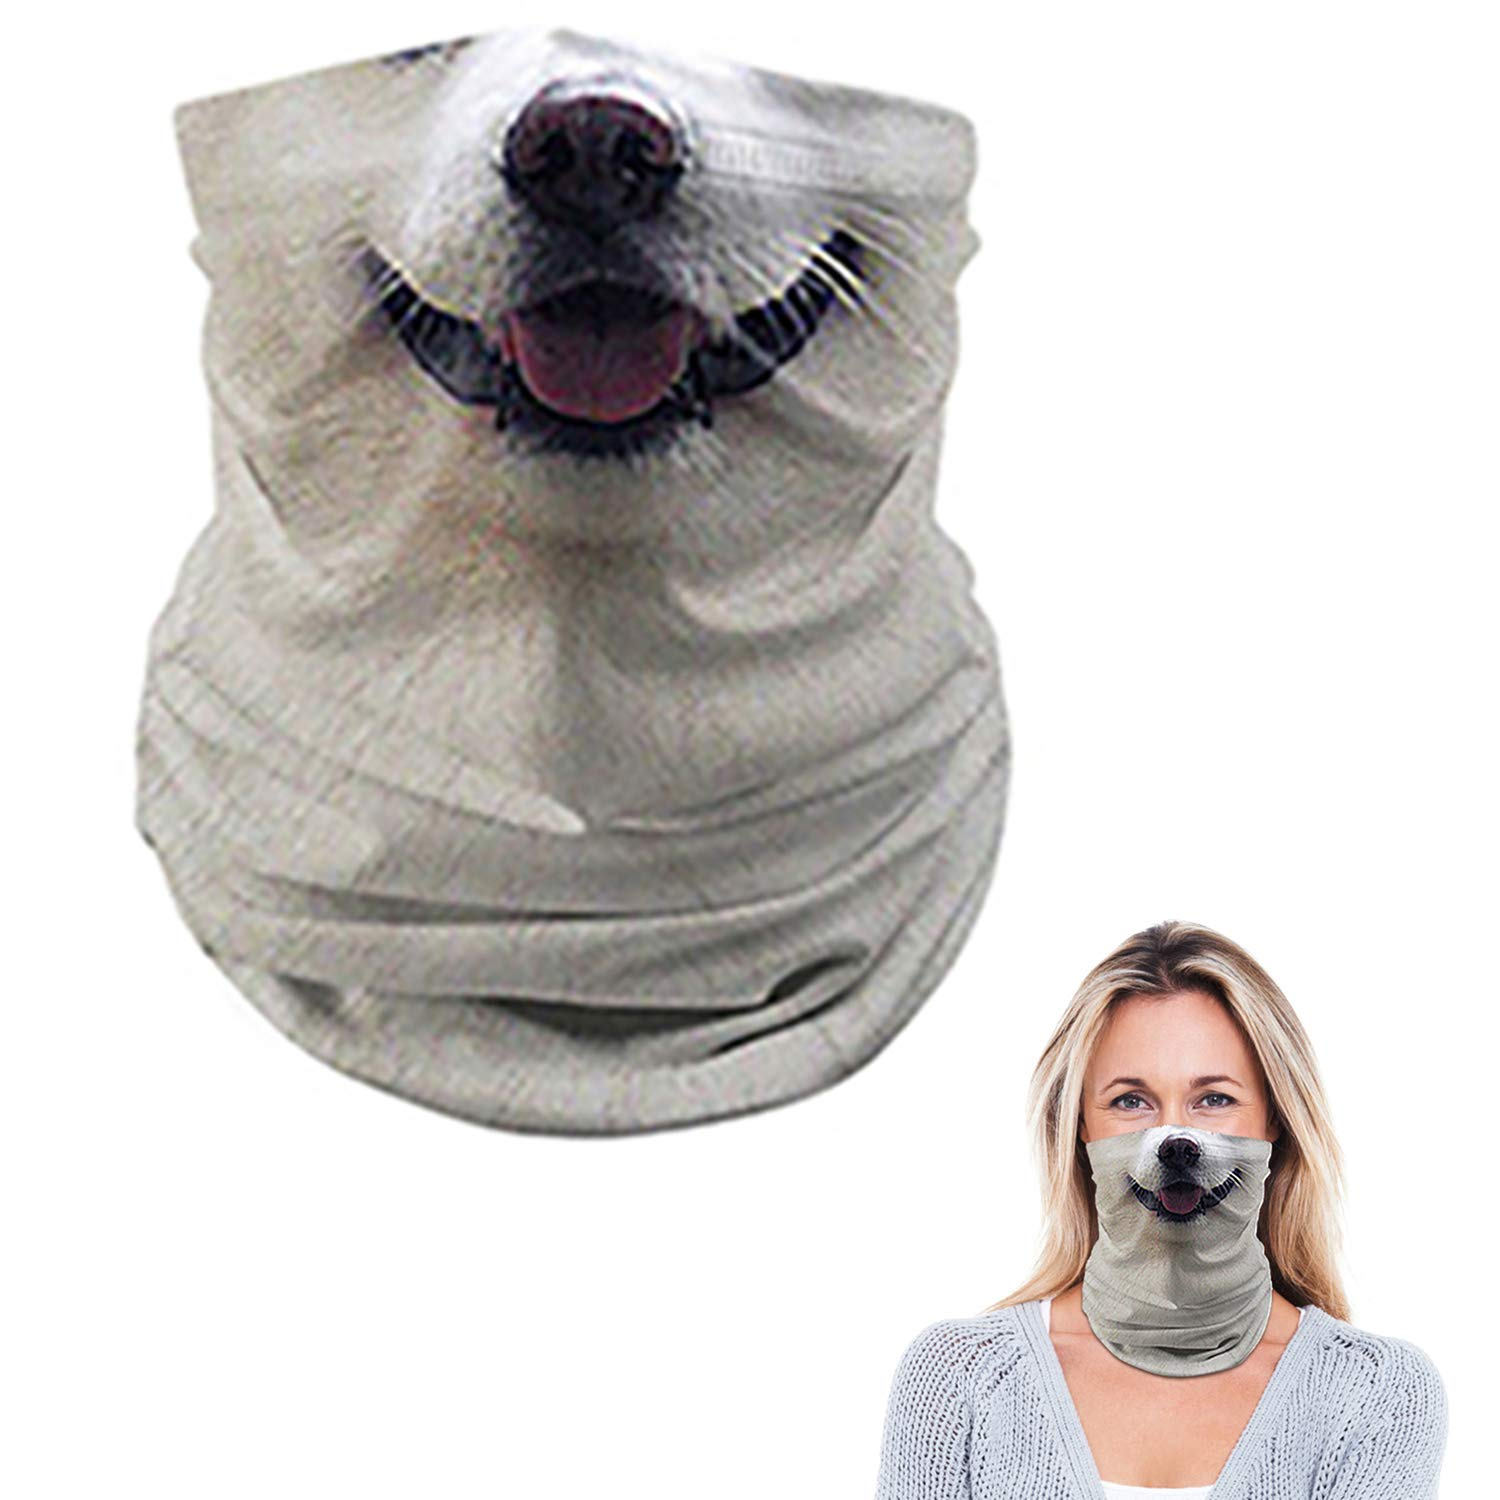 YOSUNPING Bandana Face Mask Mouth Cover for Dust Outdoors Wind Sports